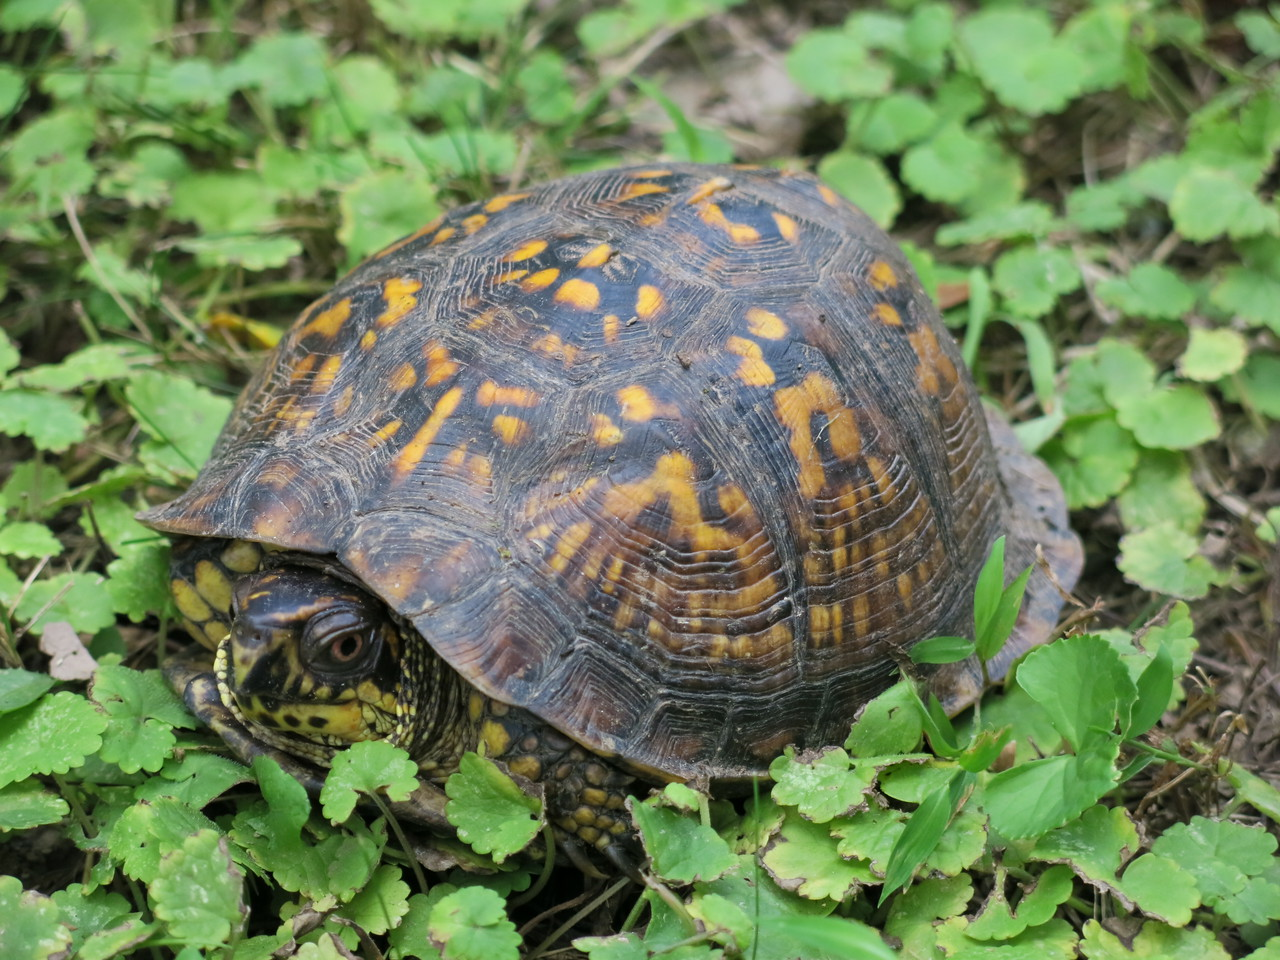 Tortoise along the towpath